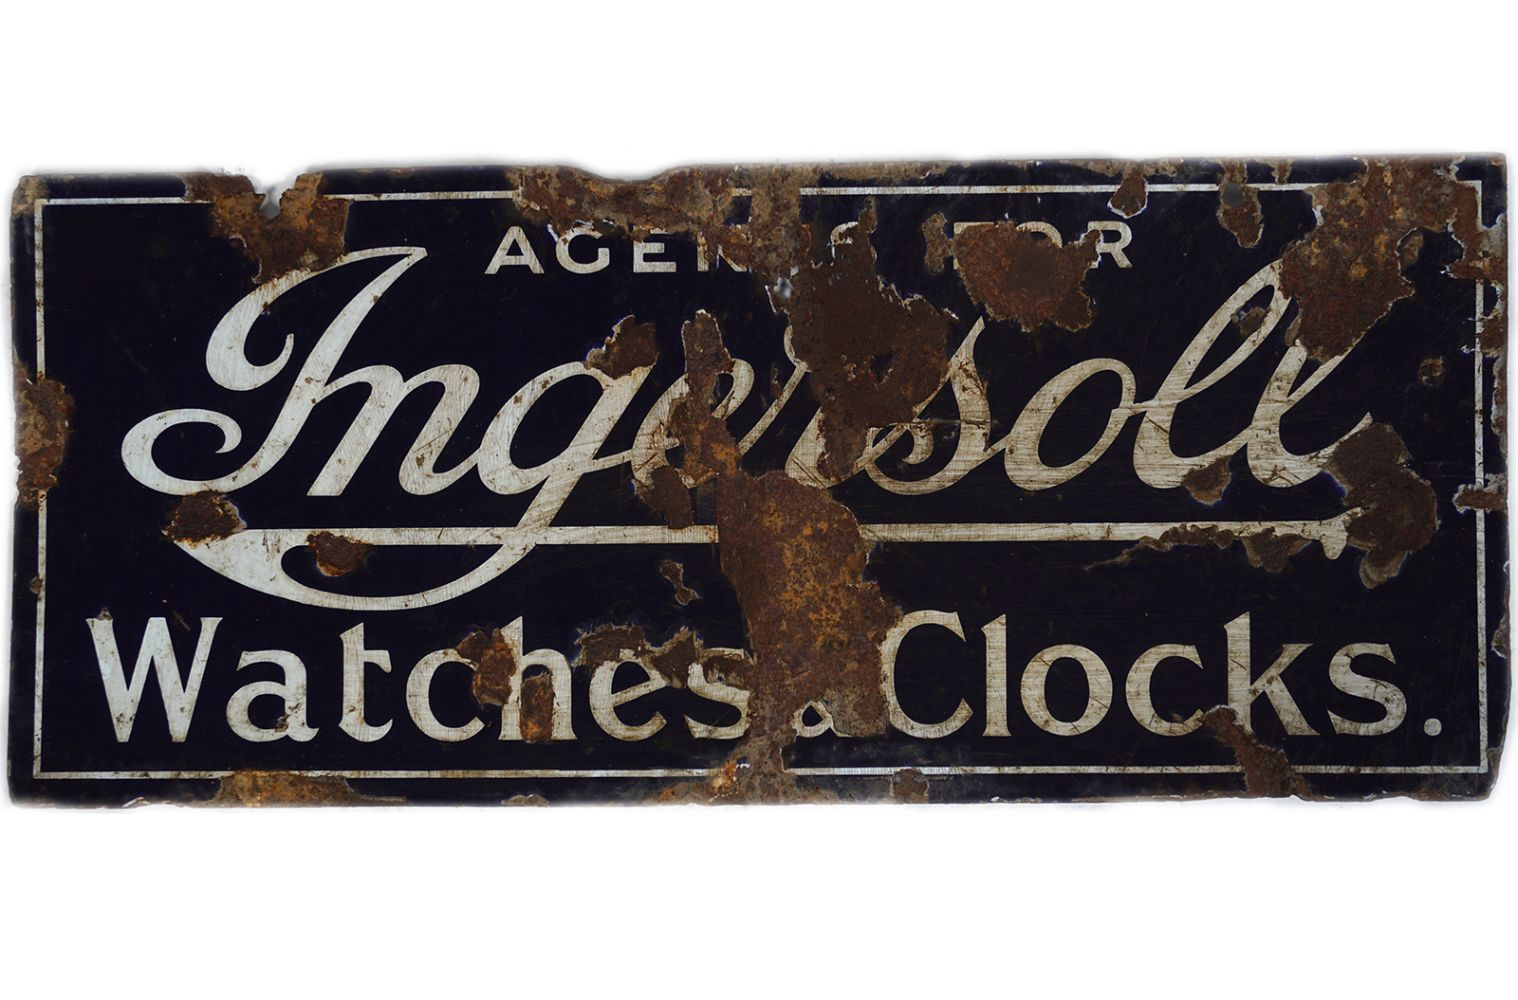 AGENTS FOR INGERSOLL WATCHES & CLOCKS SIGN